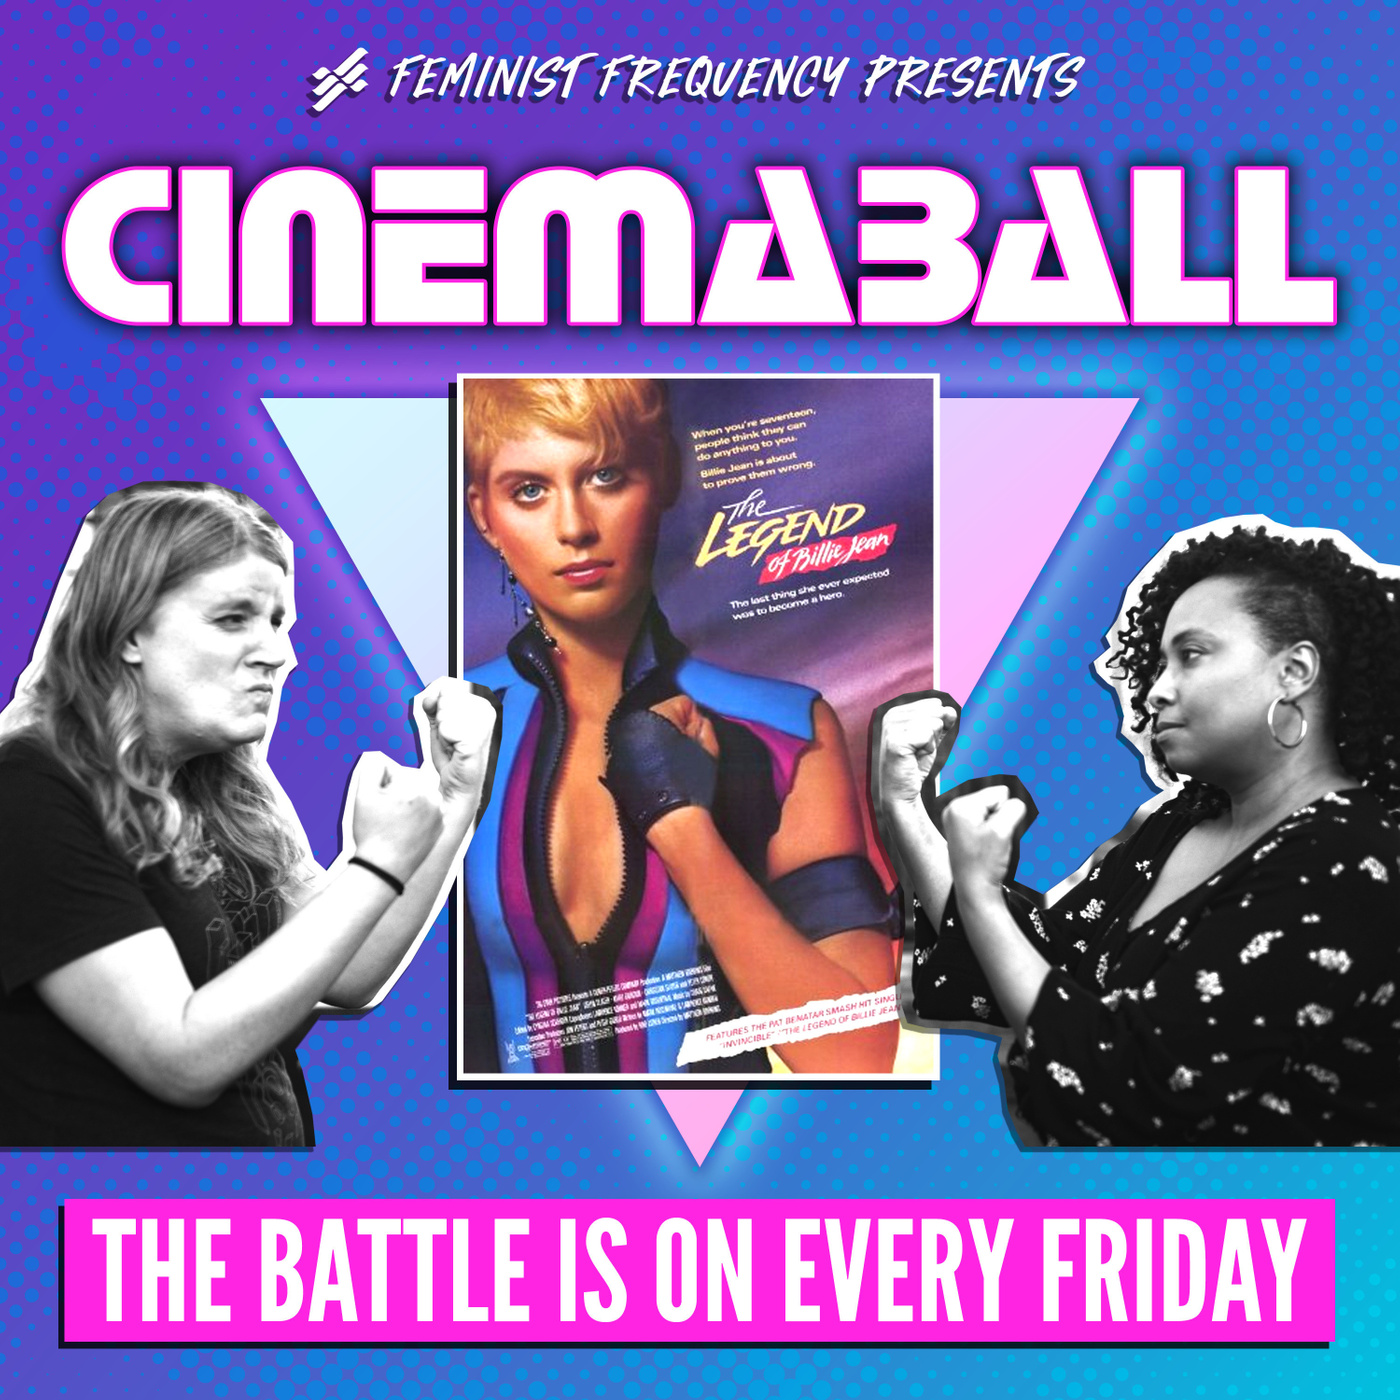 Cinemaball 14: The Legend of Billie Jean (1985)